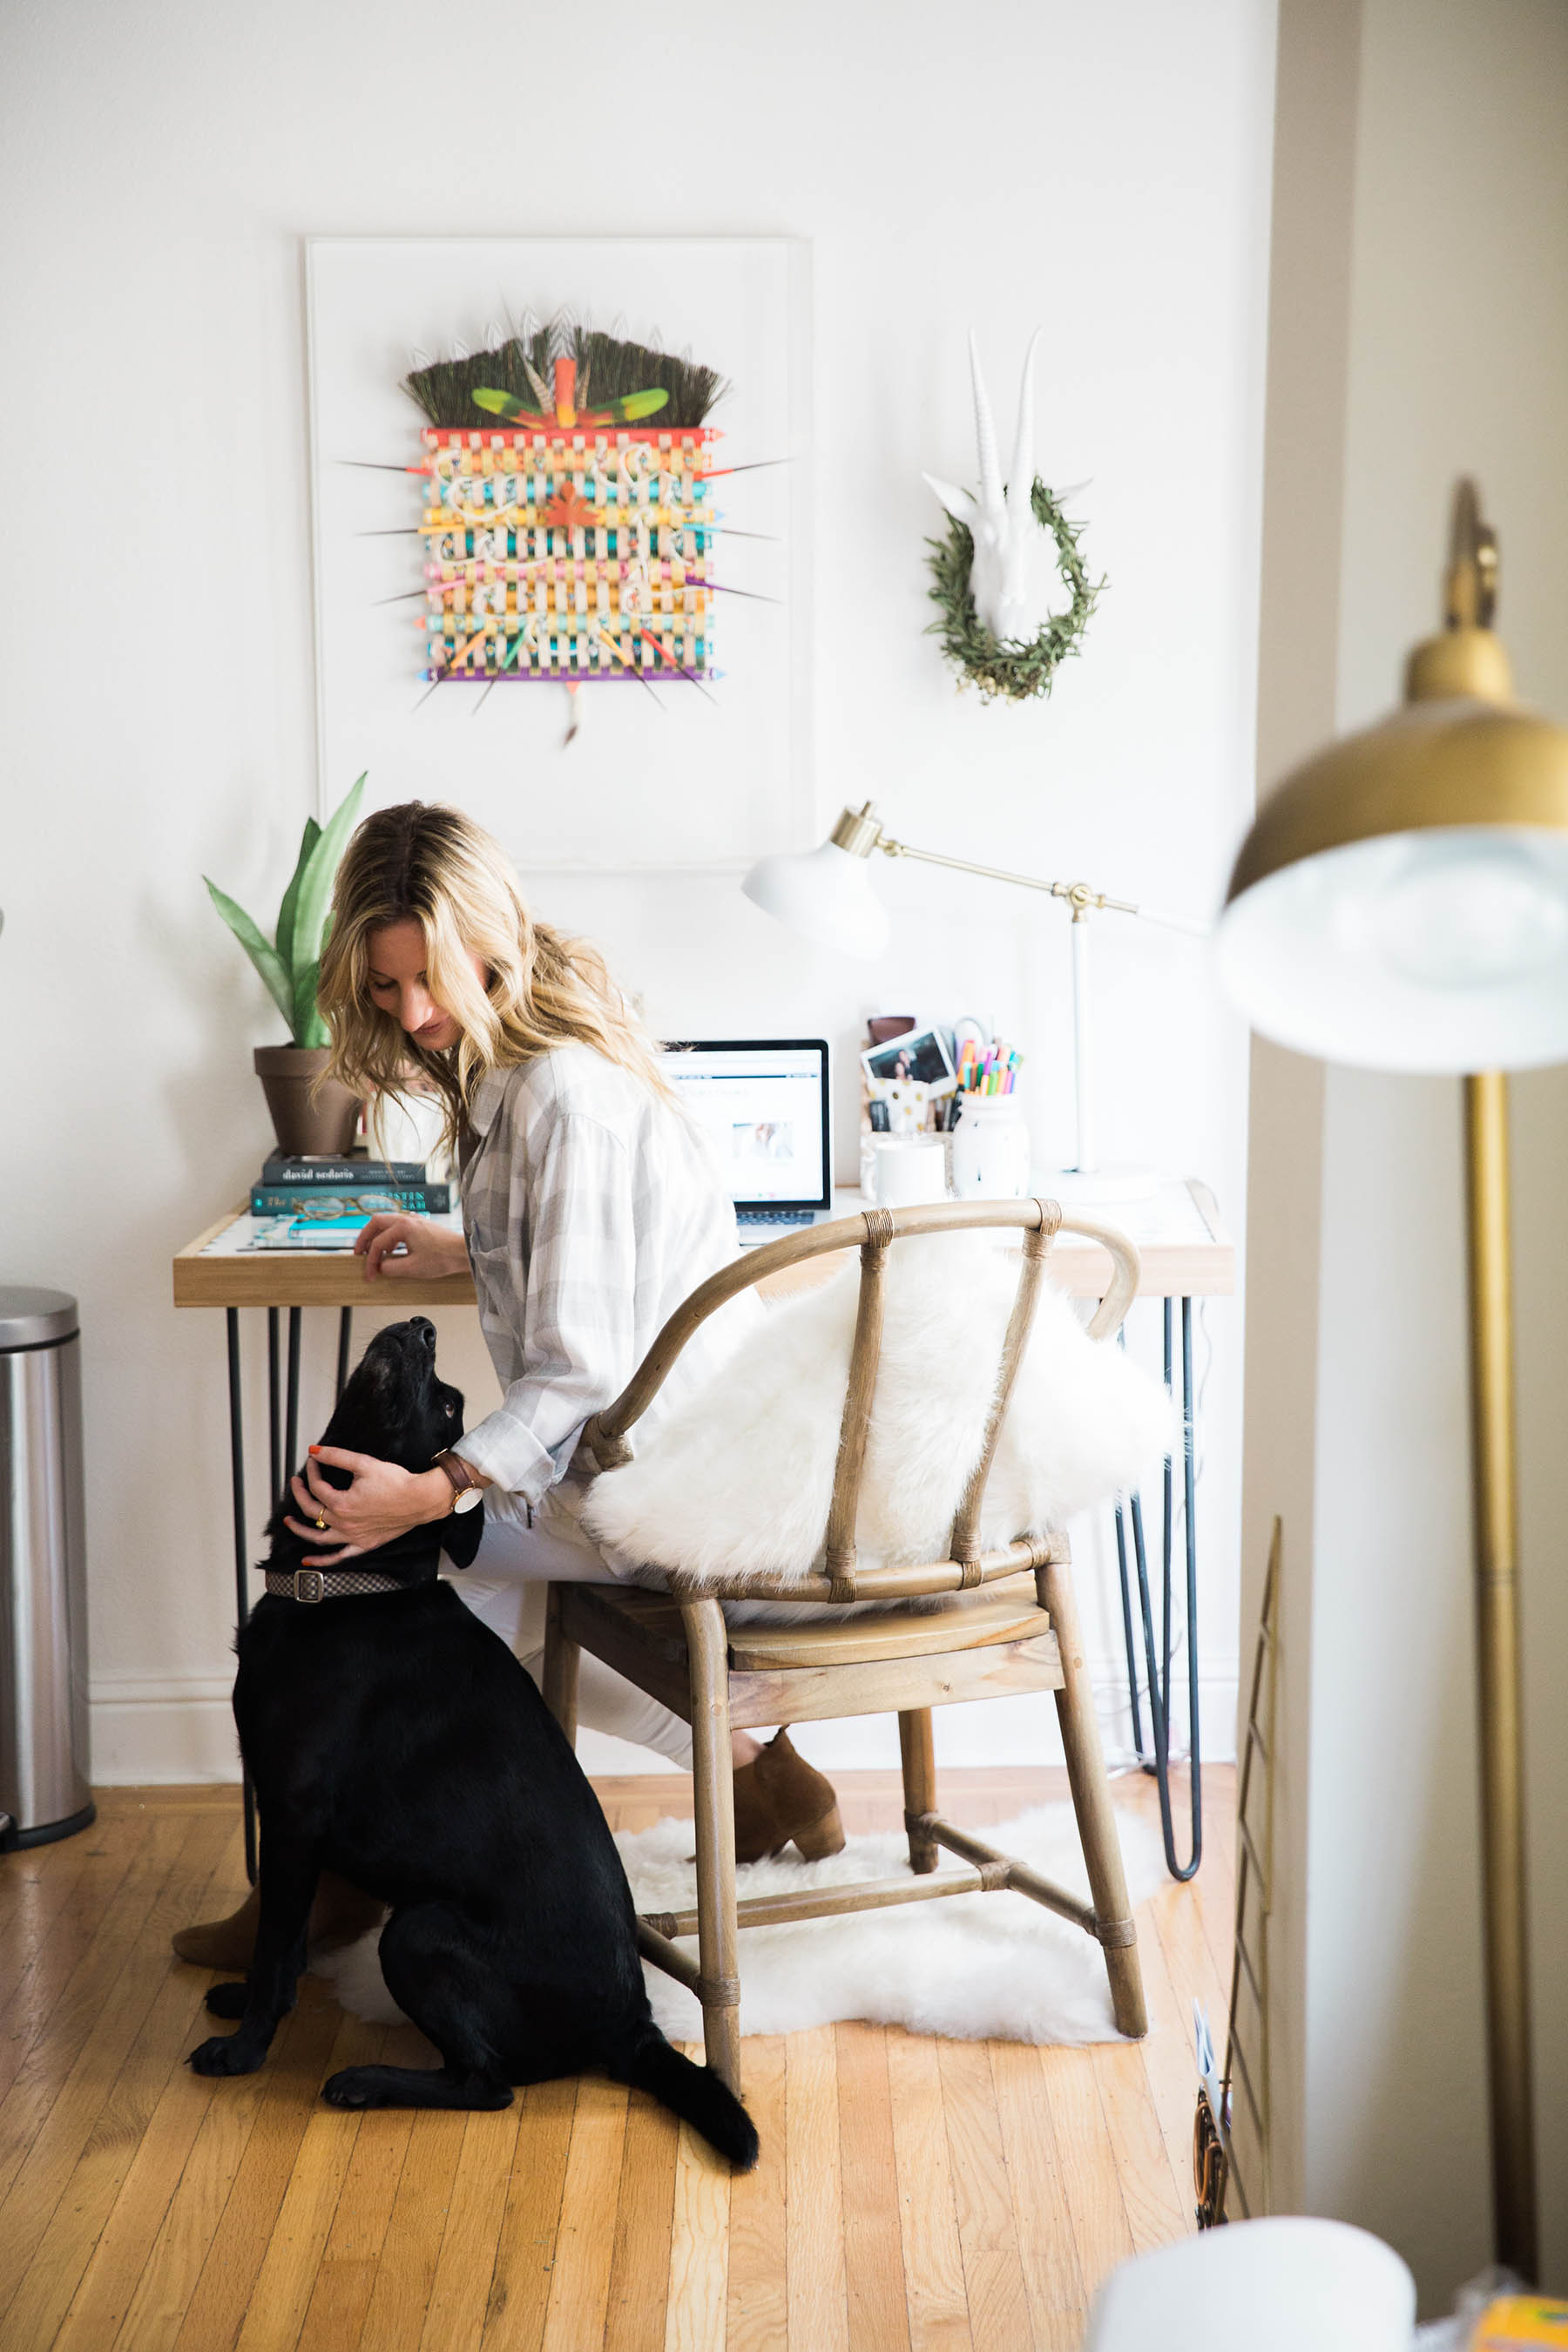 Amanda Holstein blogging at her boho style desk with her black lab